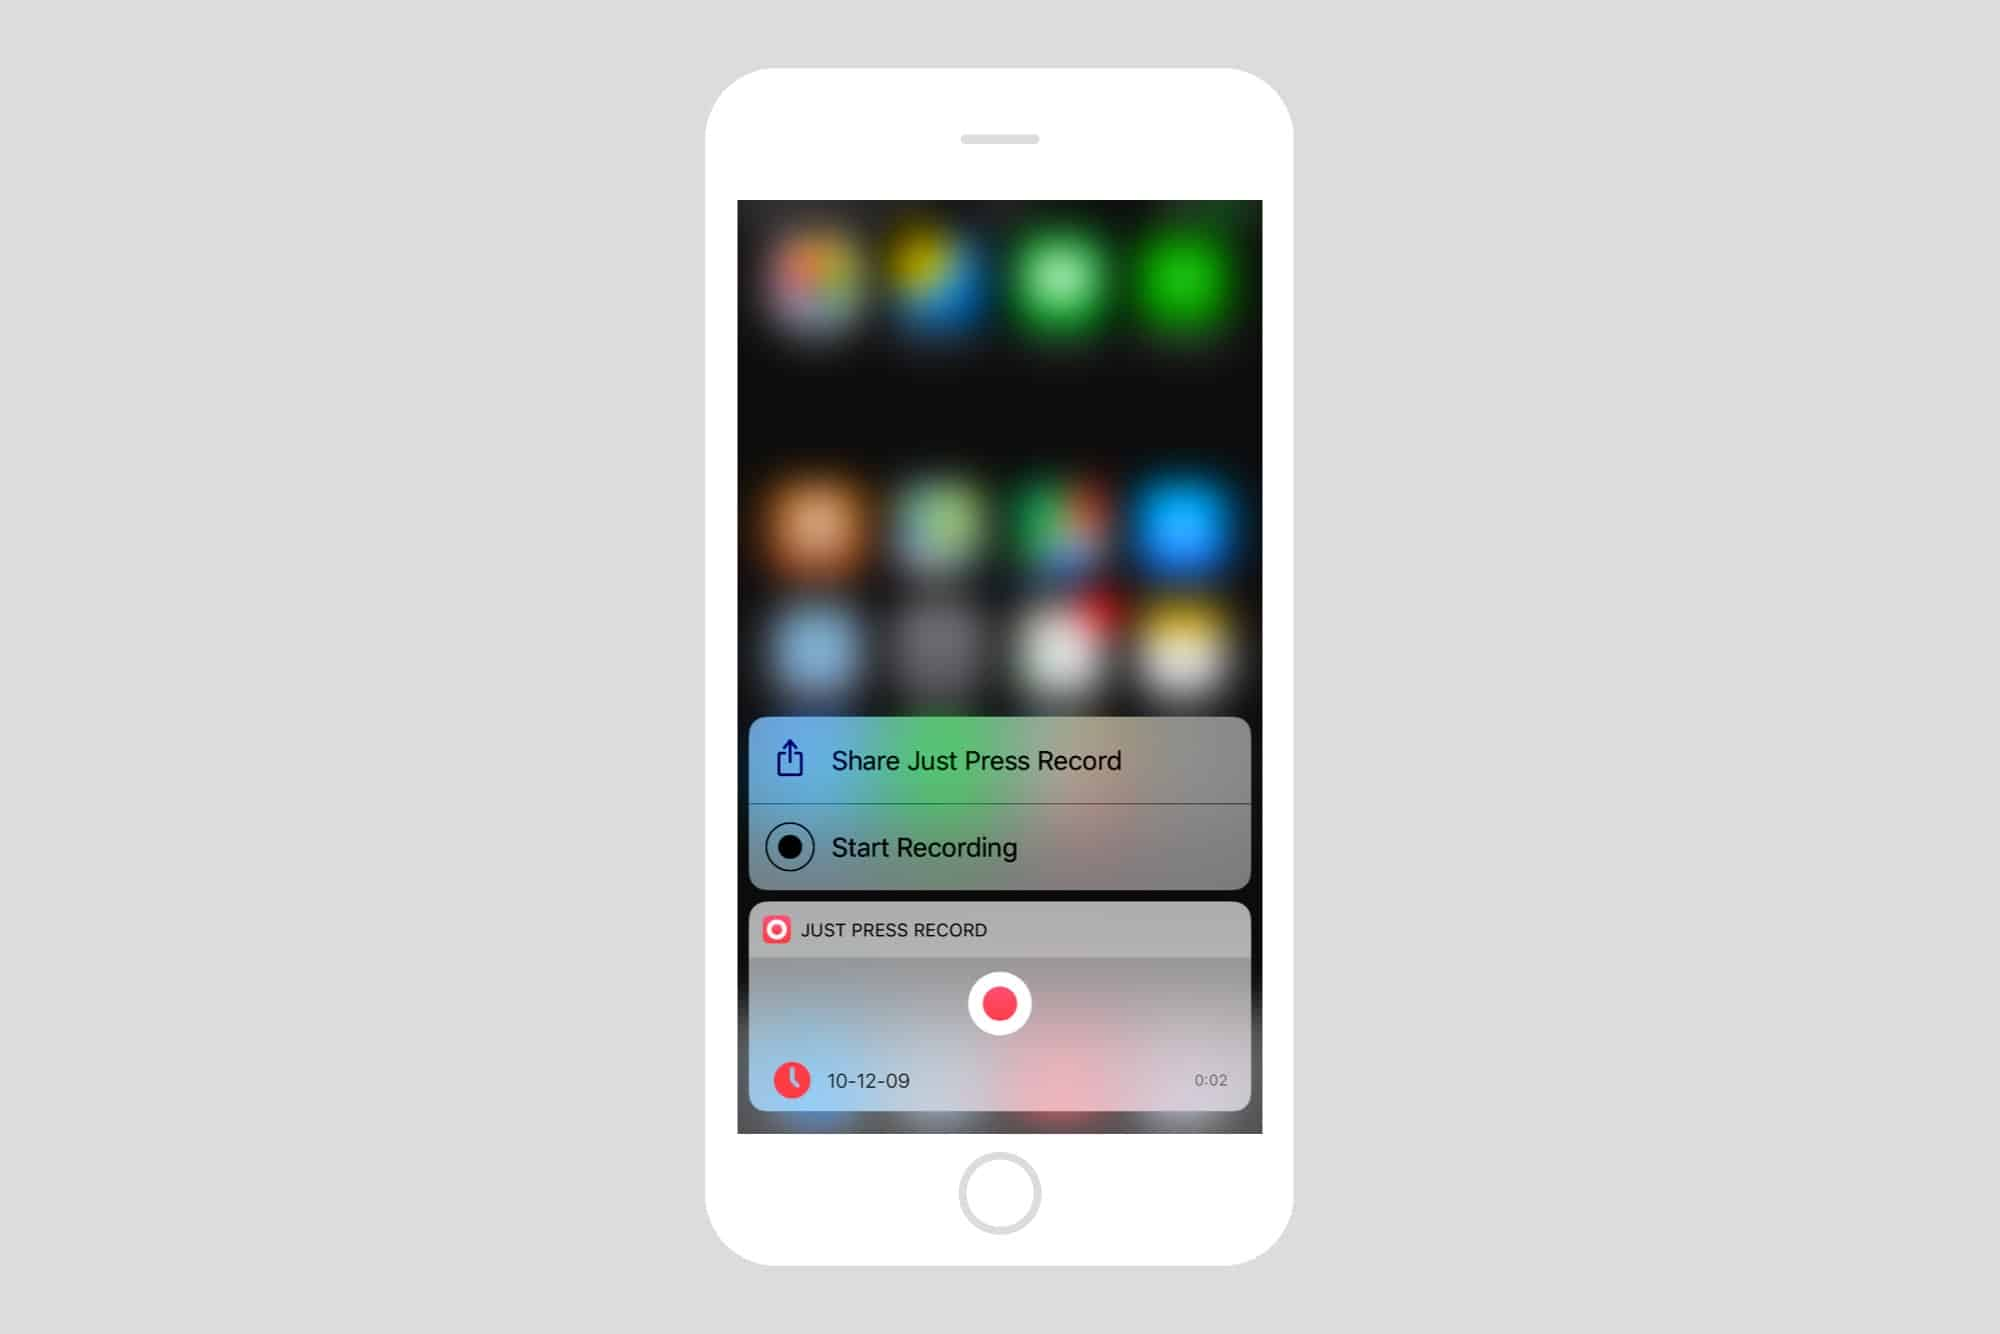 Just Press Record lets you record using 3D Touch.